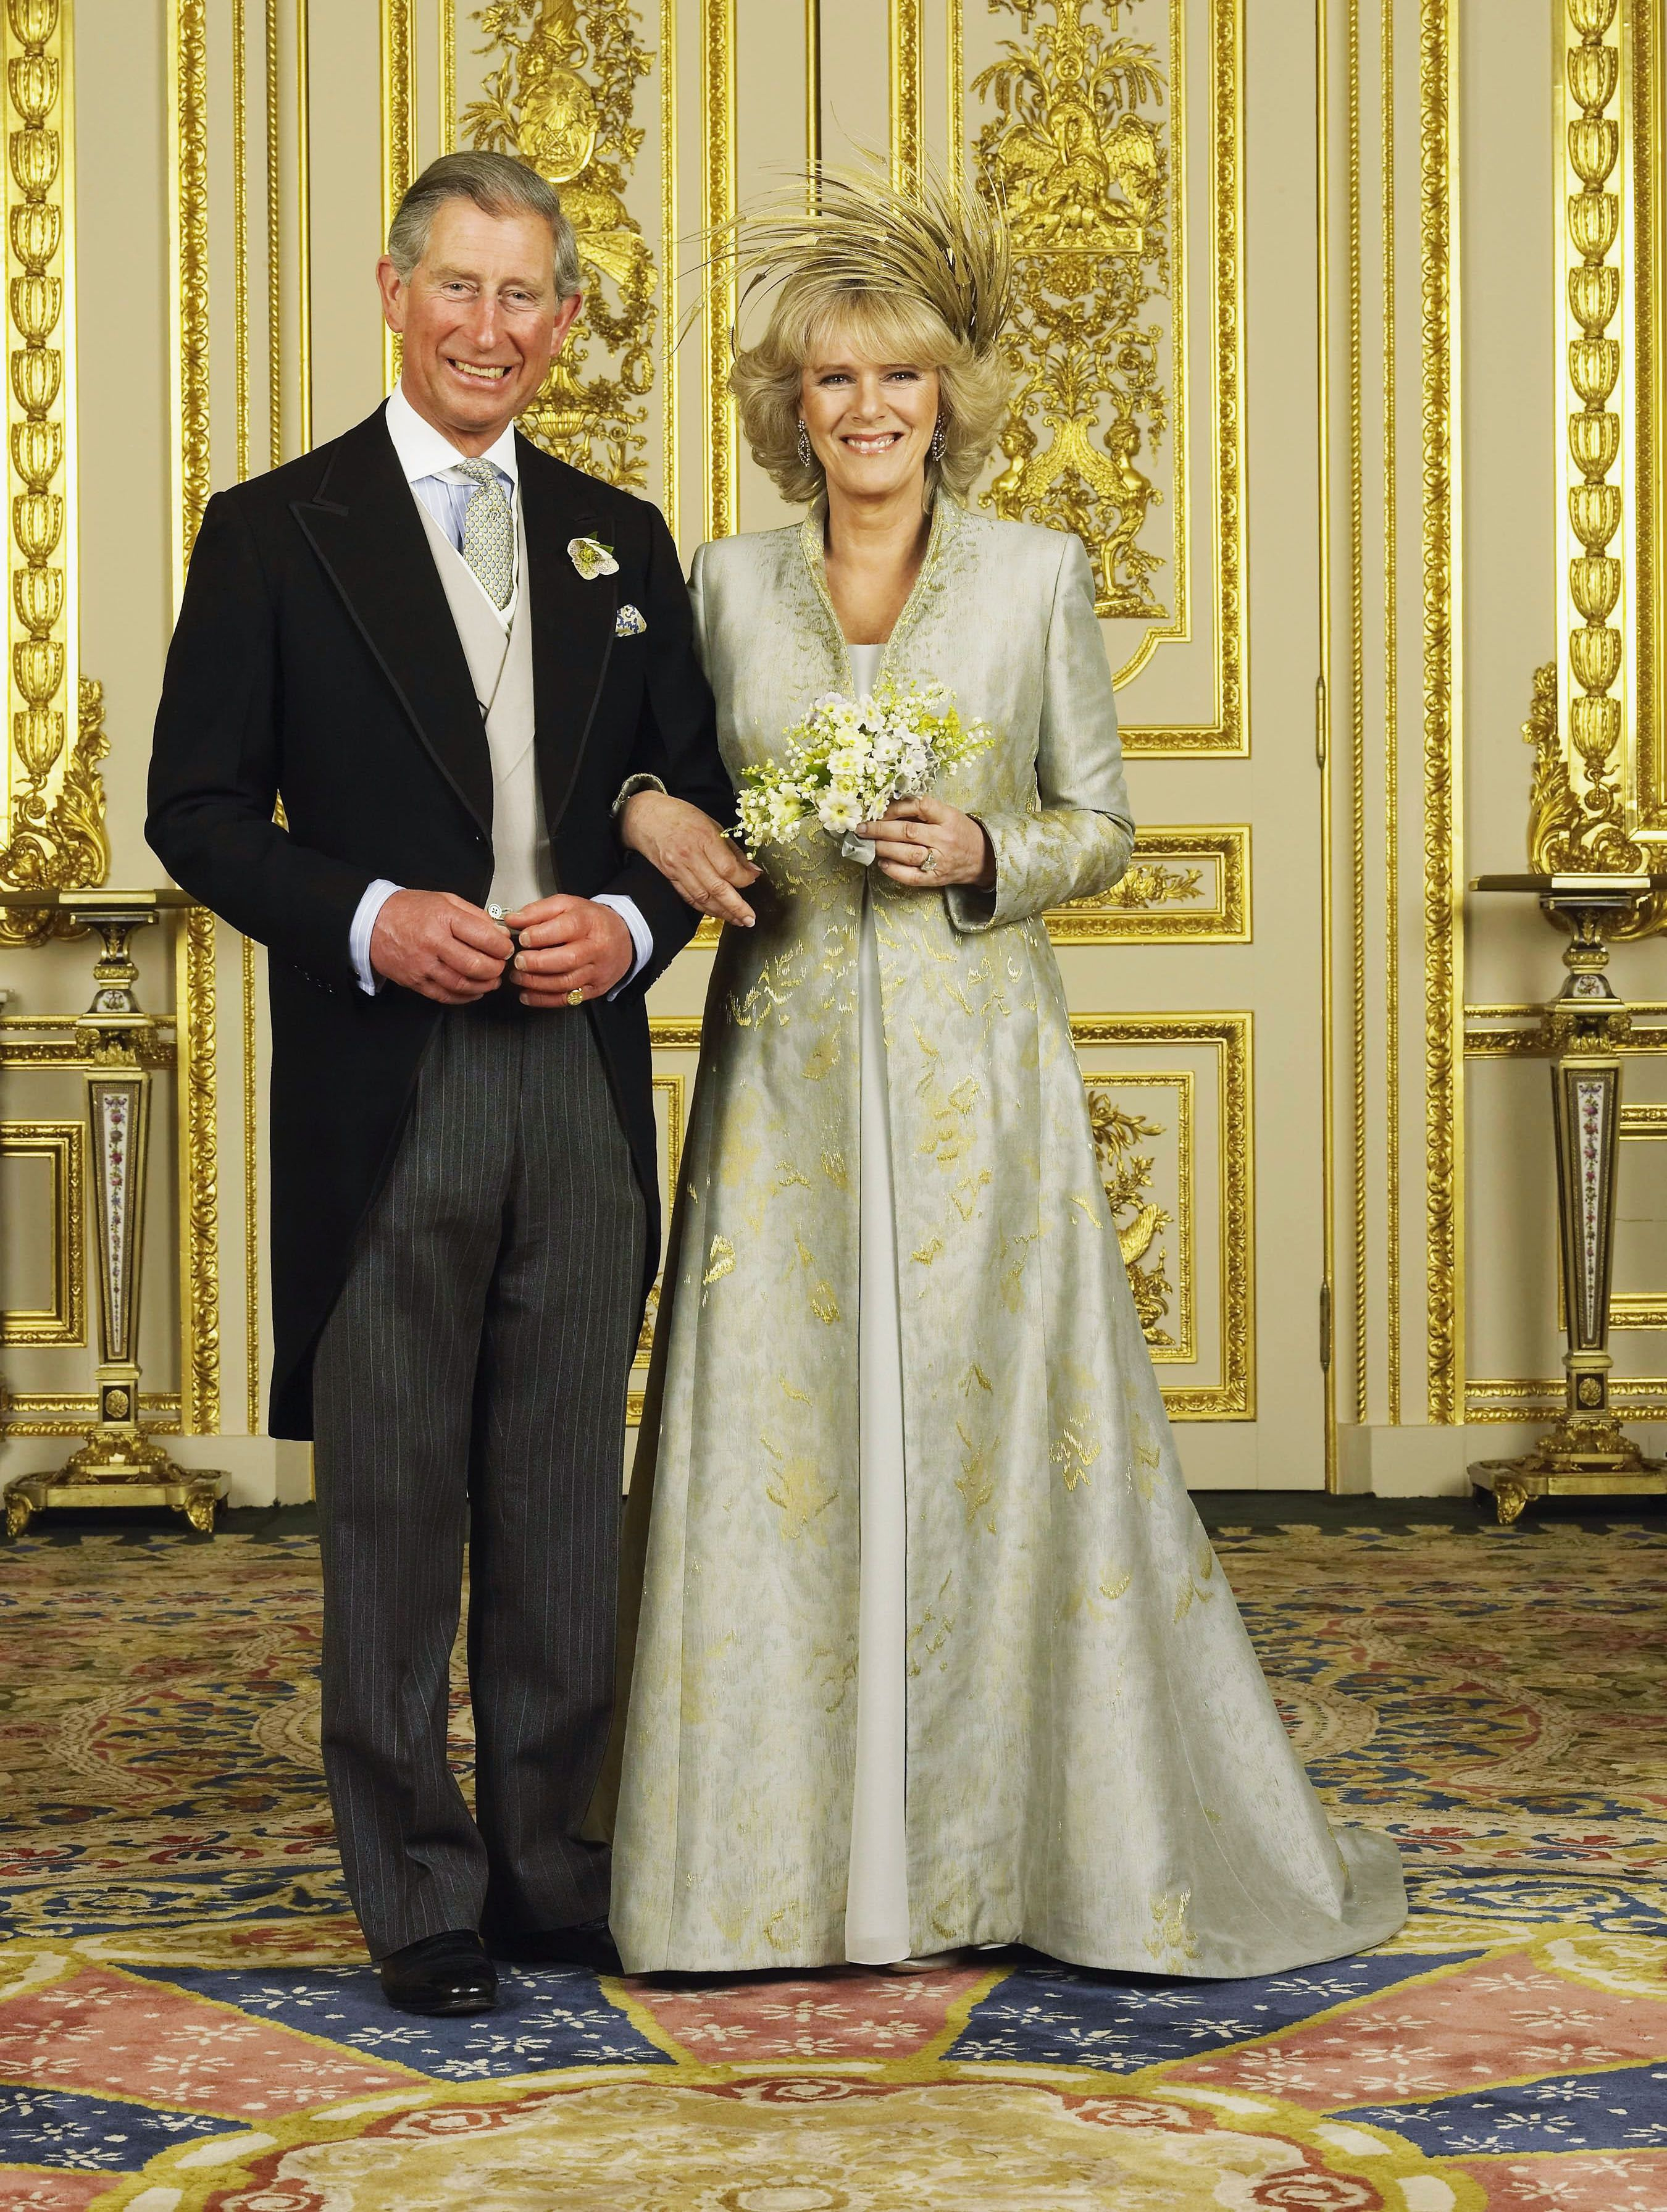 Gallery A Look Back At The Wedding Of Prince Charles And Camilla Parker Bowles